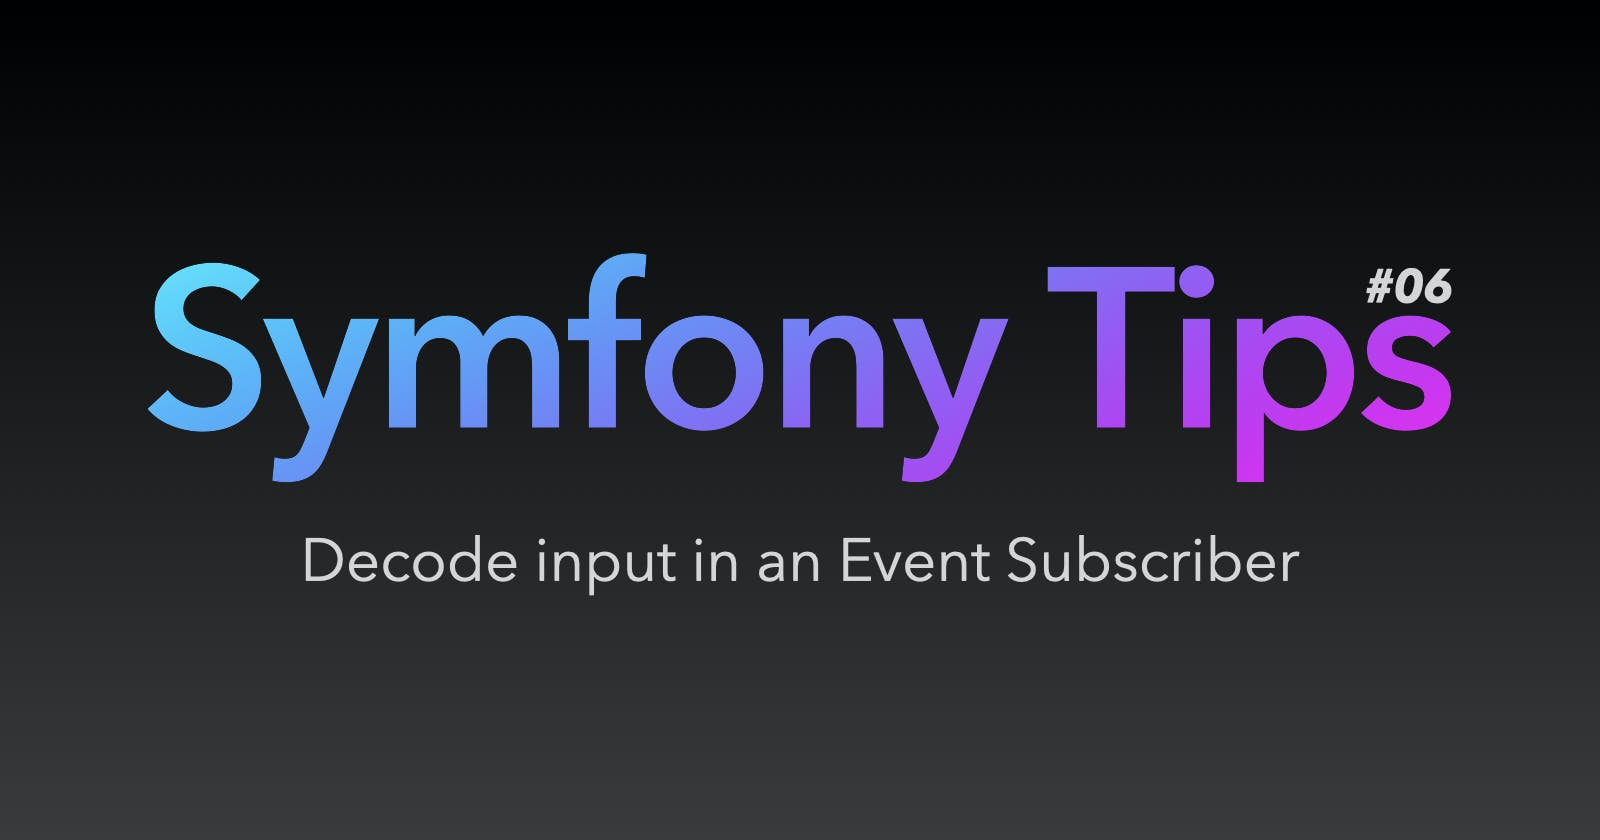 Symfony Tips #06 - Decode input in an Event Subscriber